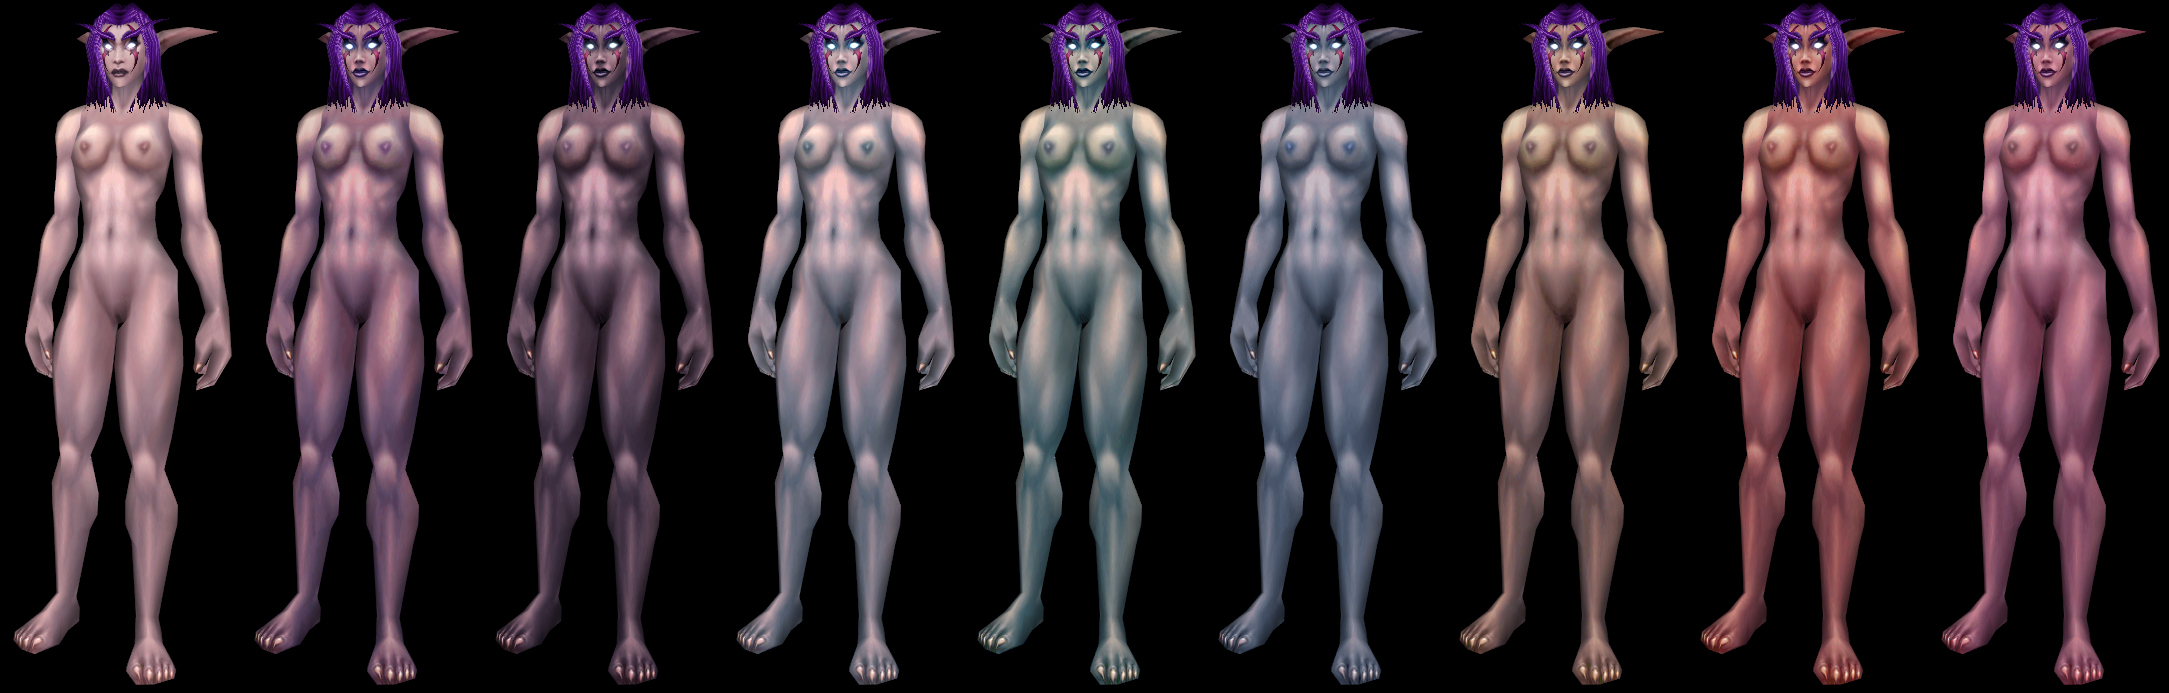 Warcraft nude night elf anime comics